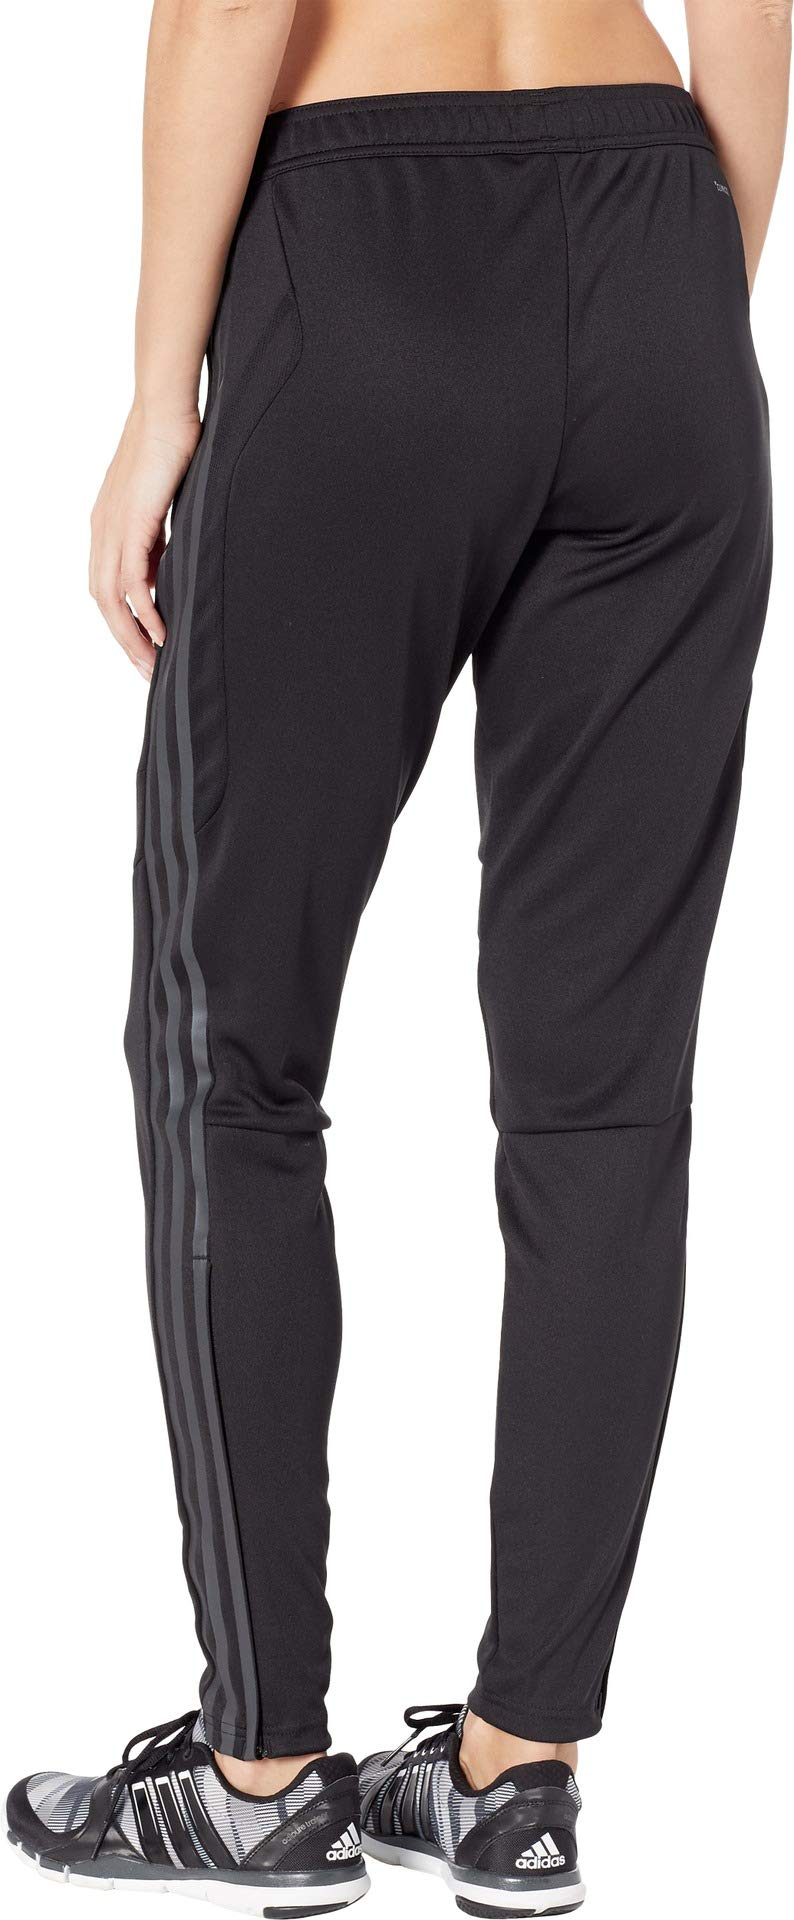 adidas Women's Soccer Tiro 19 Training Pant, Black/Carbon Pearl Essence, XX-Large by adidas